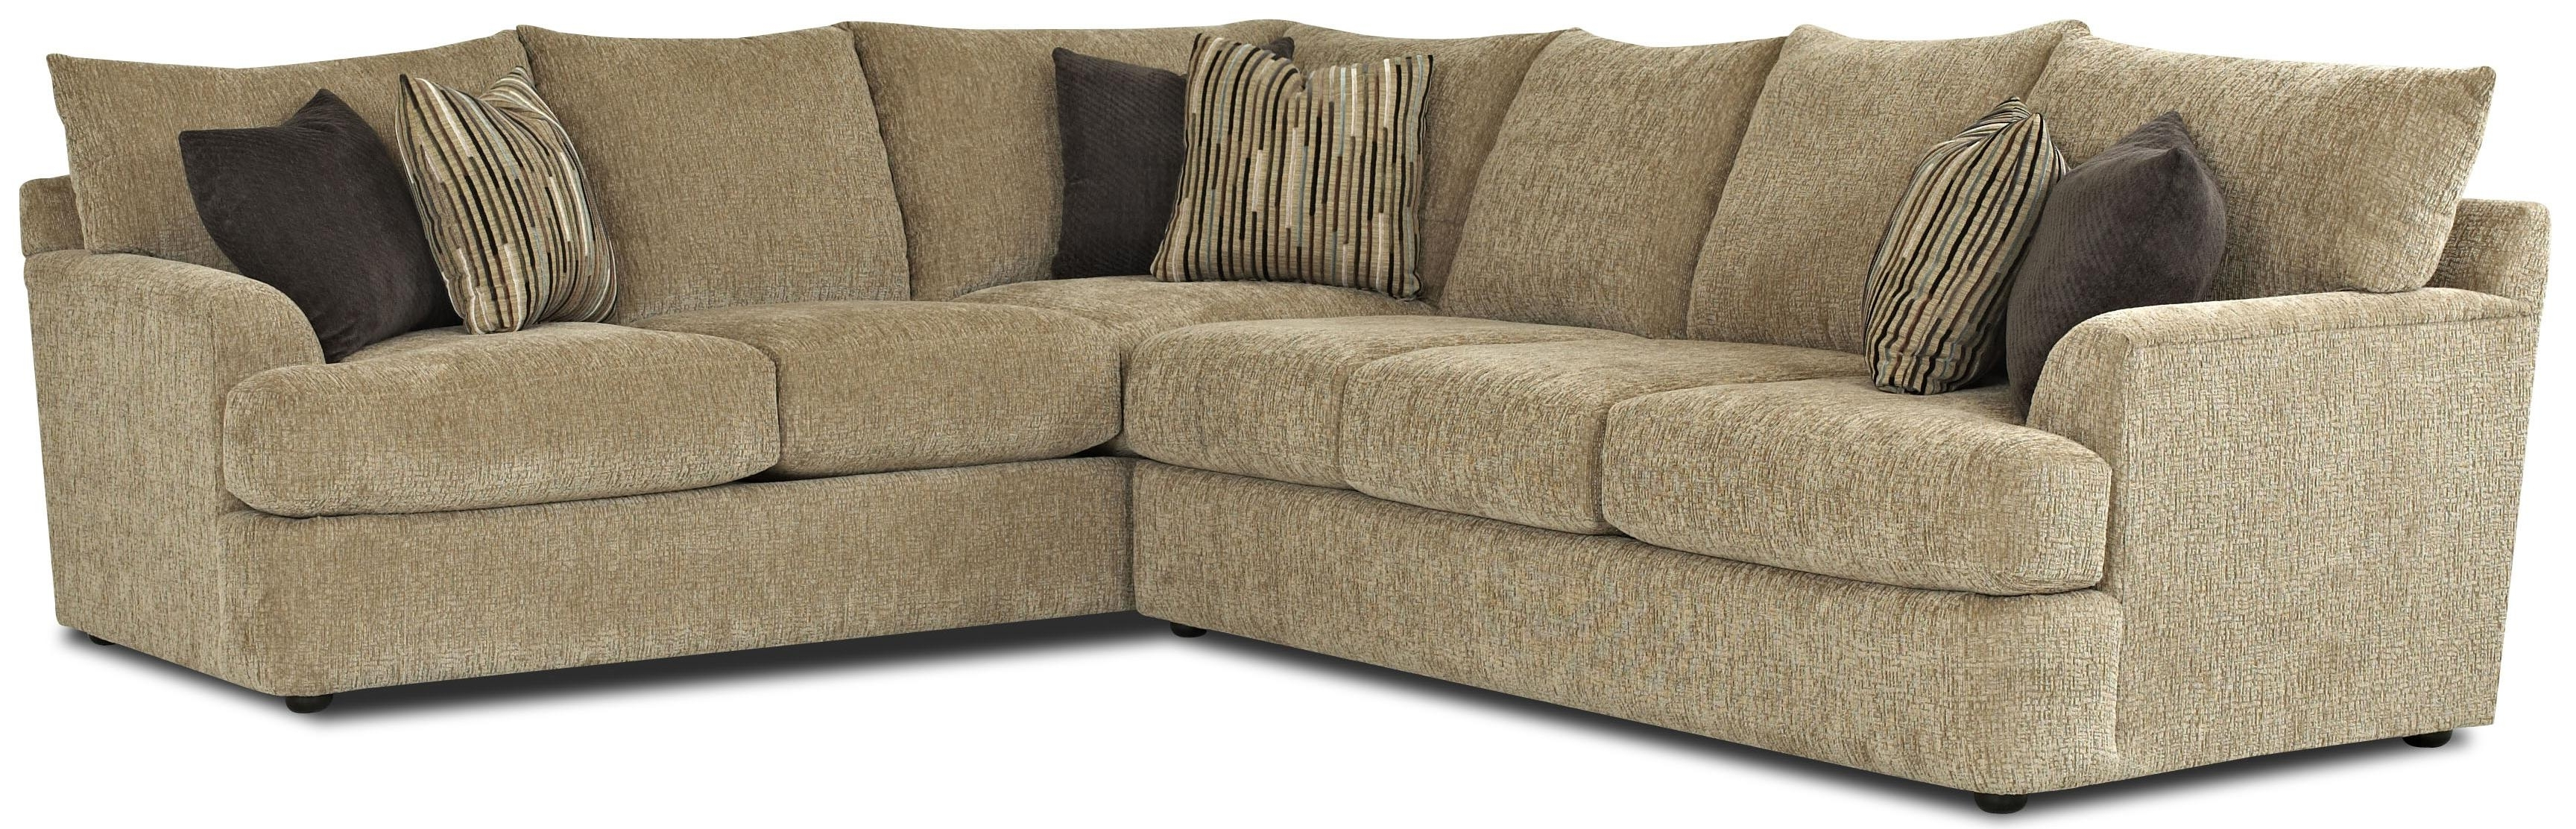 L Shaped Sectional Sofas With 2019 Contemporary L Shaped Sectional Sofaklaussner (View 5 of 20)